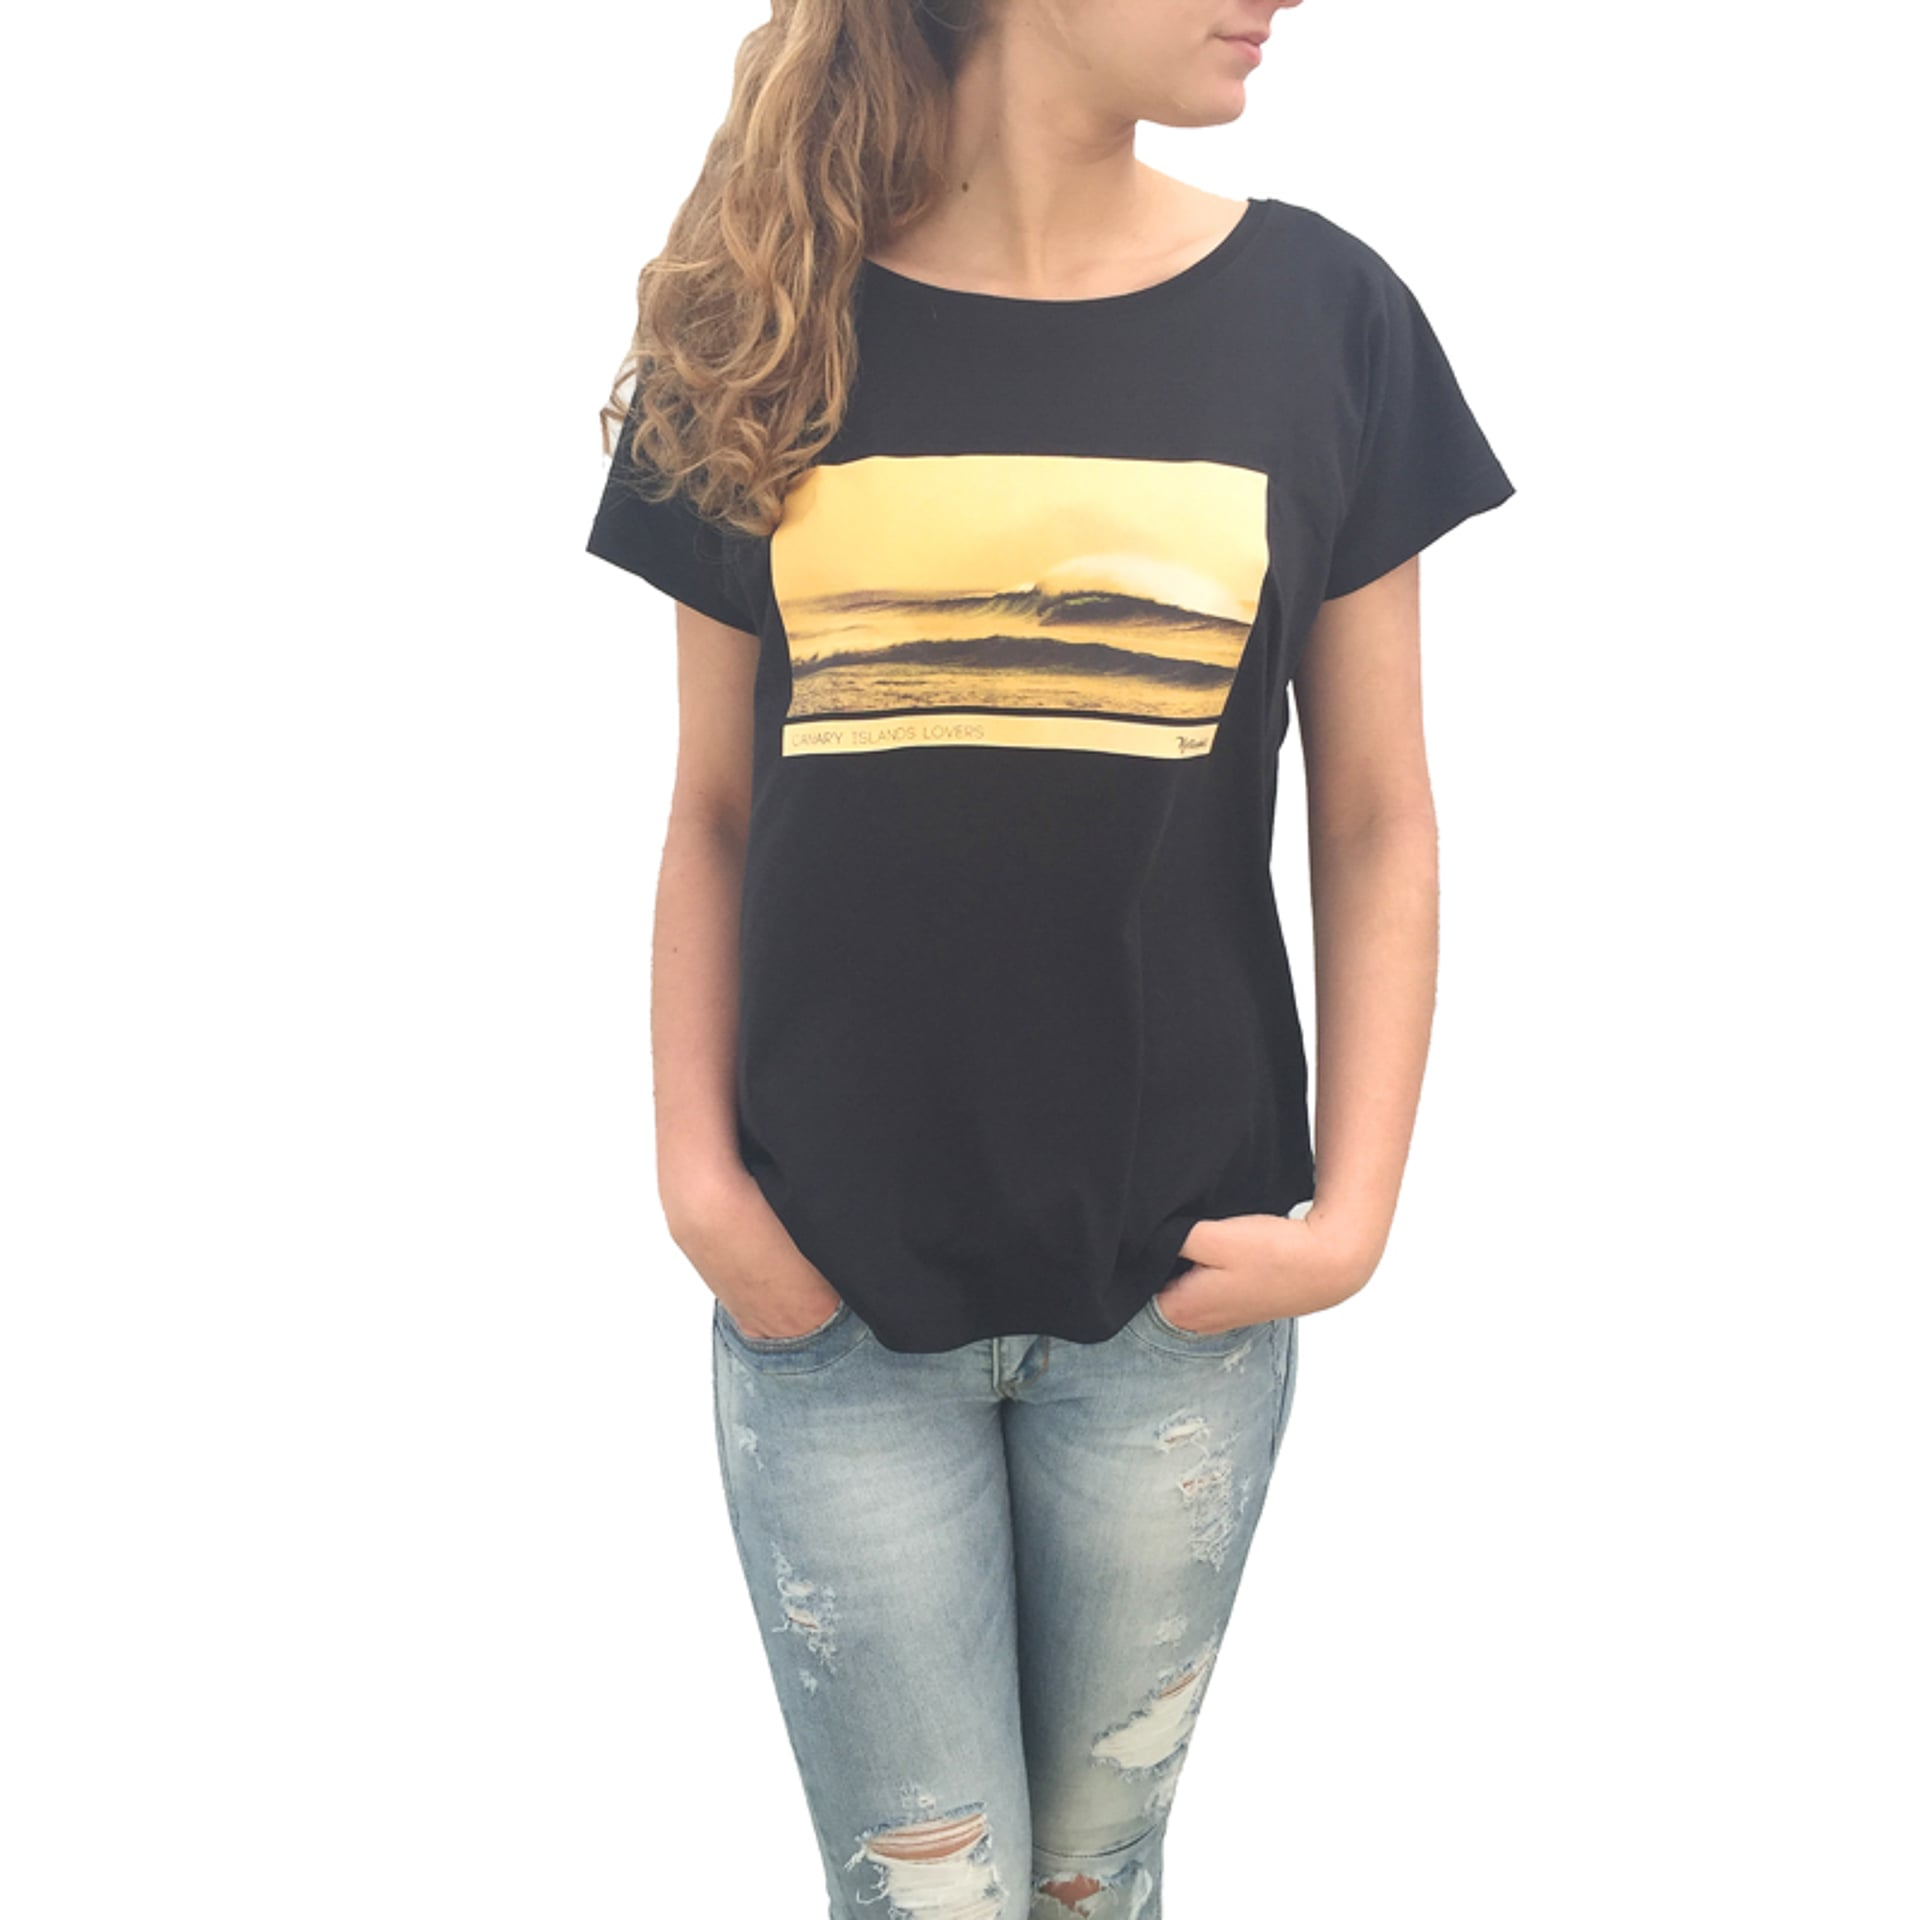 Cotillo_wave-tshirt-model-woman